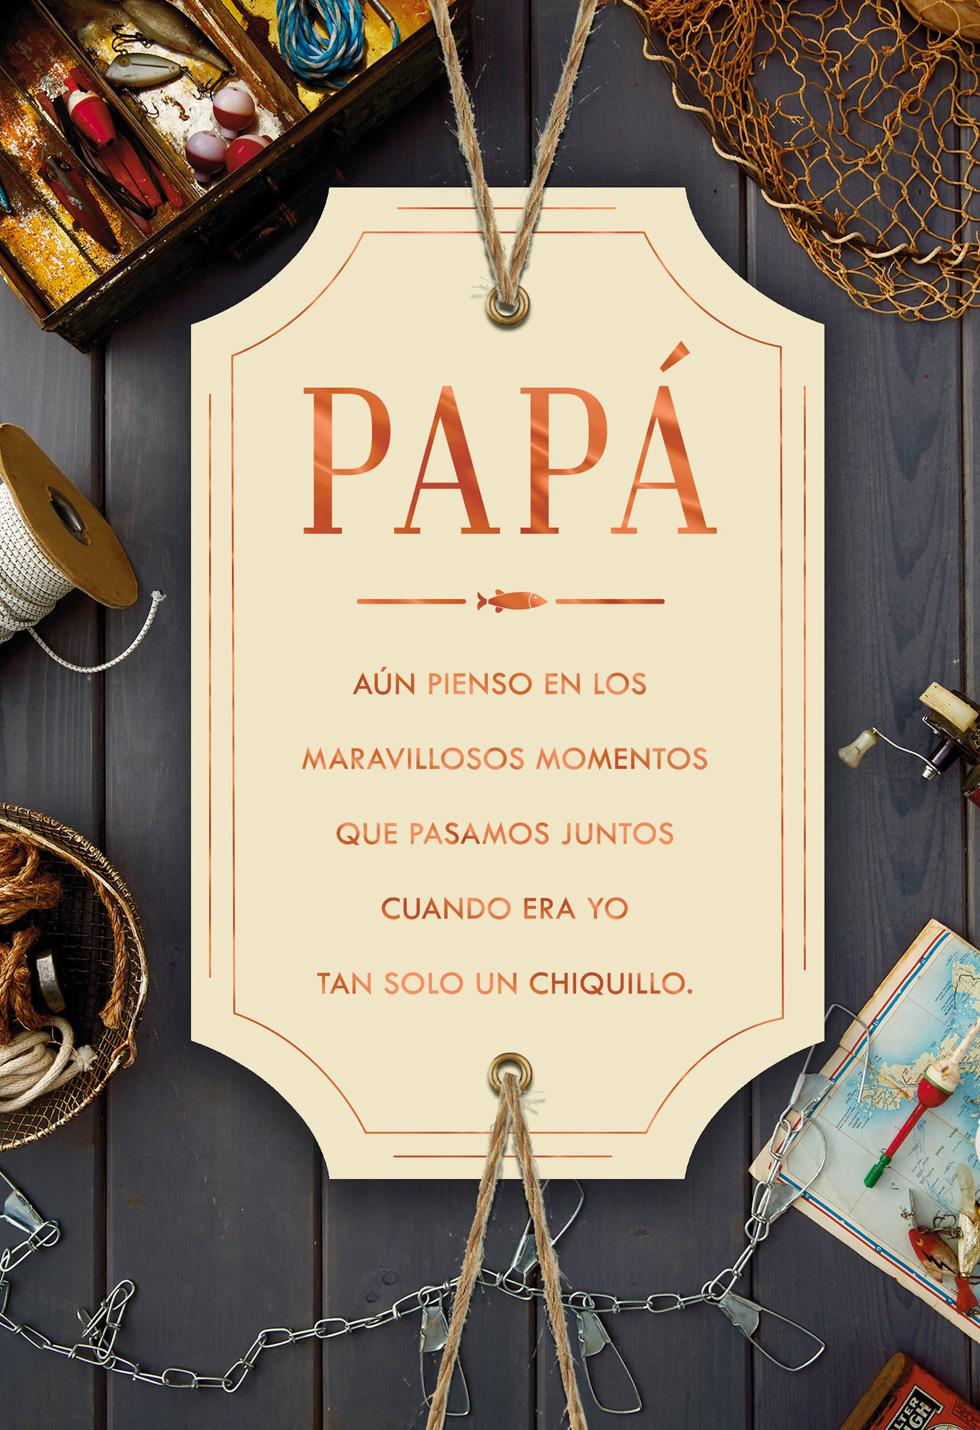 I Adore And Admire You Spanish Language Father S Day Card For Dad From Son Greeting Cards